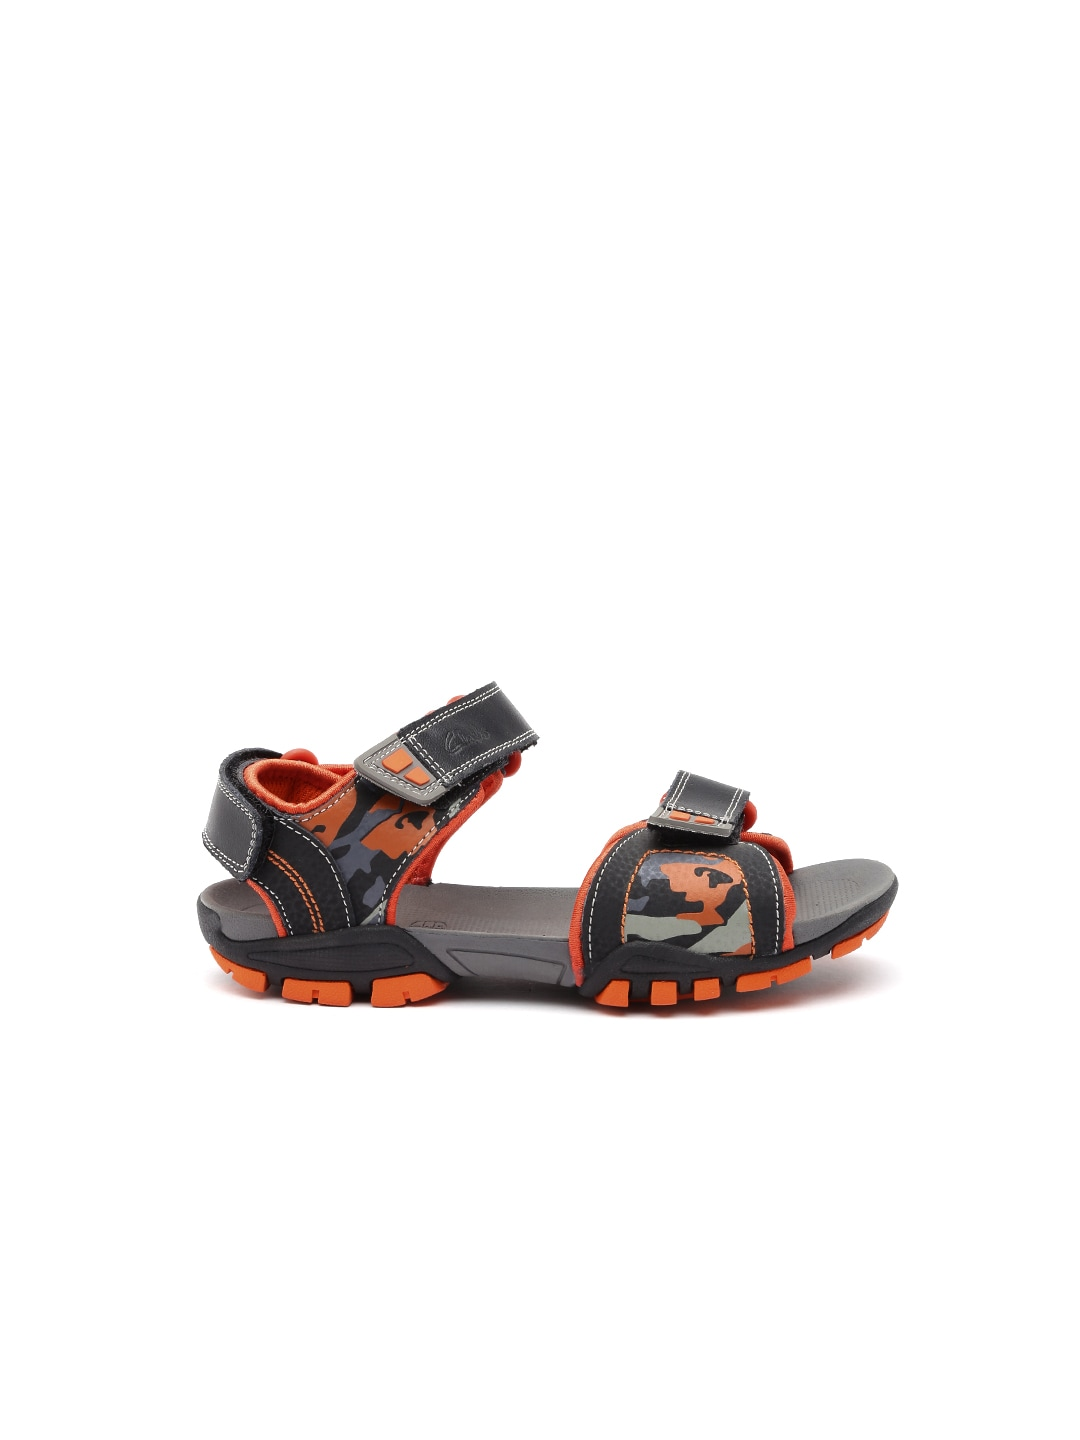 Clarks Boys Sandals - Buy Clarks Boys Sandals online in India 64a7fe4bfe8d